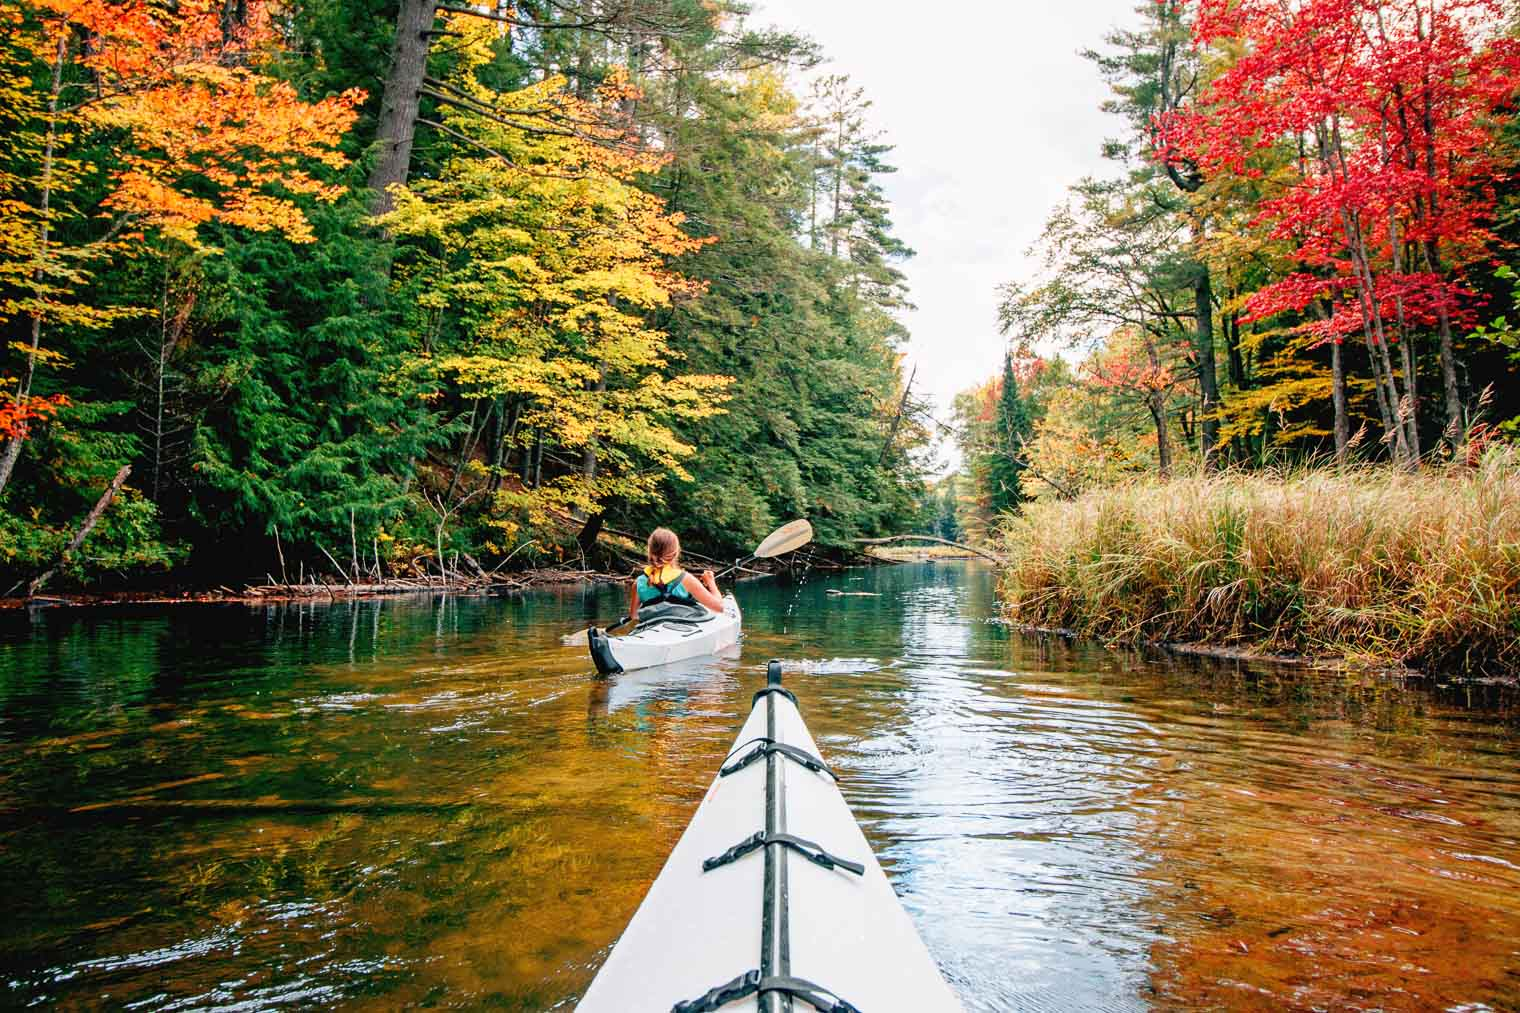 Autumn kayak camping in the Adirondacks.